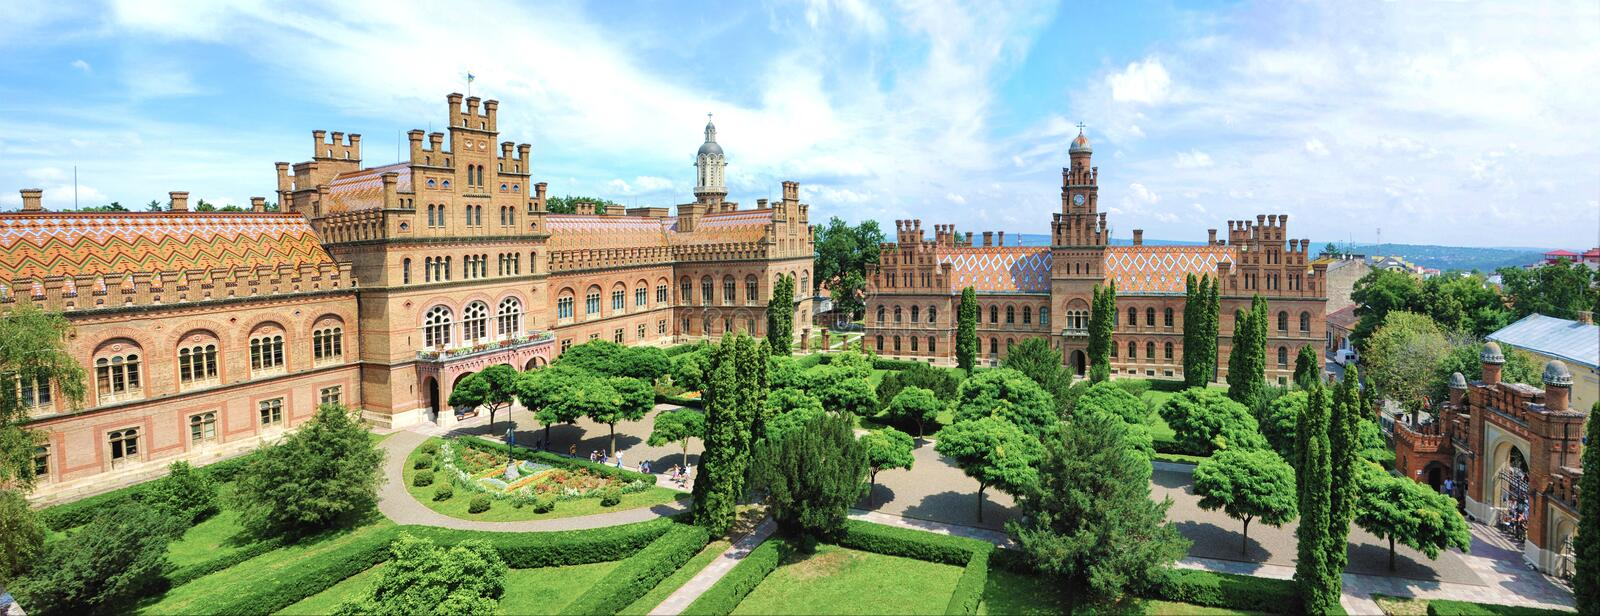 Yuriy Fedkovych Chernivtsi National University. Chernivtsi National University (full name Yuriy Fedkovych Chernivtsi National University Ukrainian stock photo